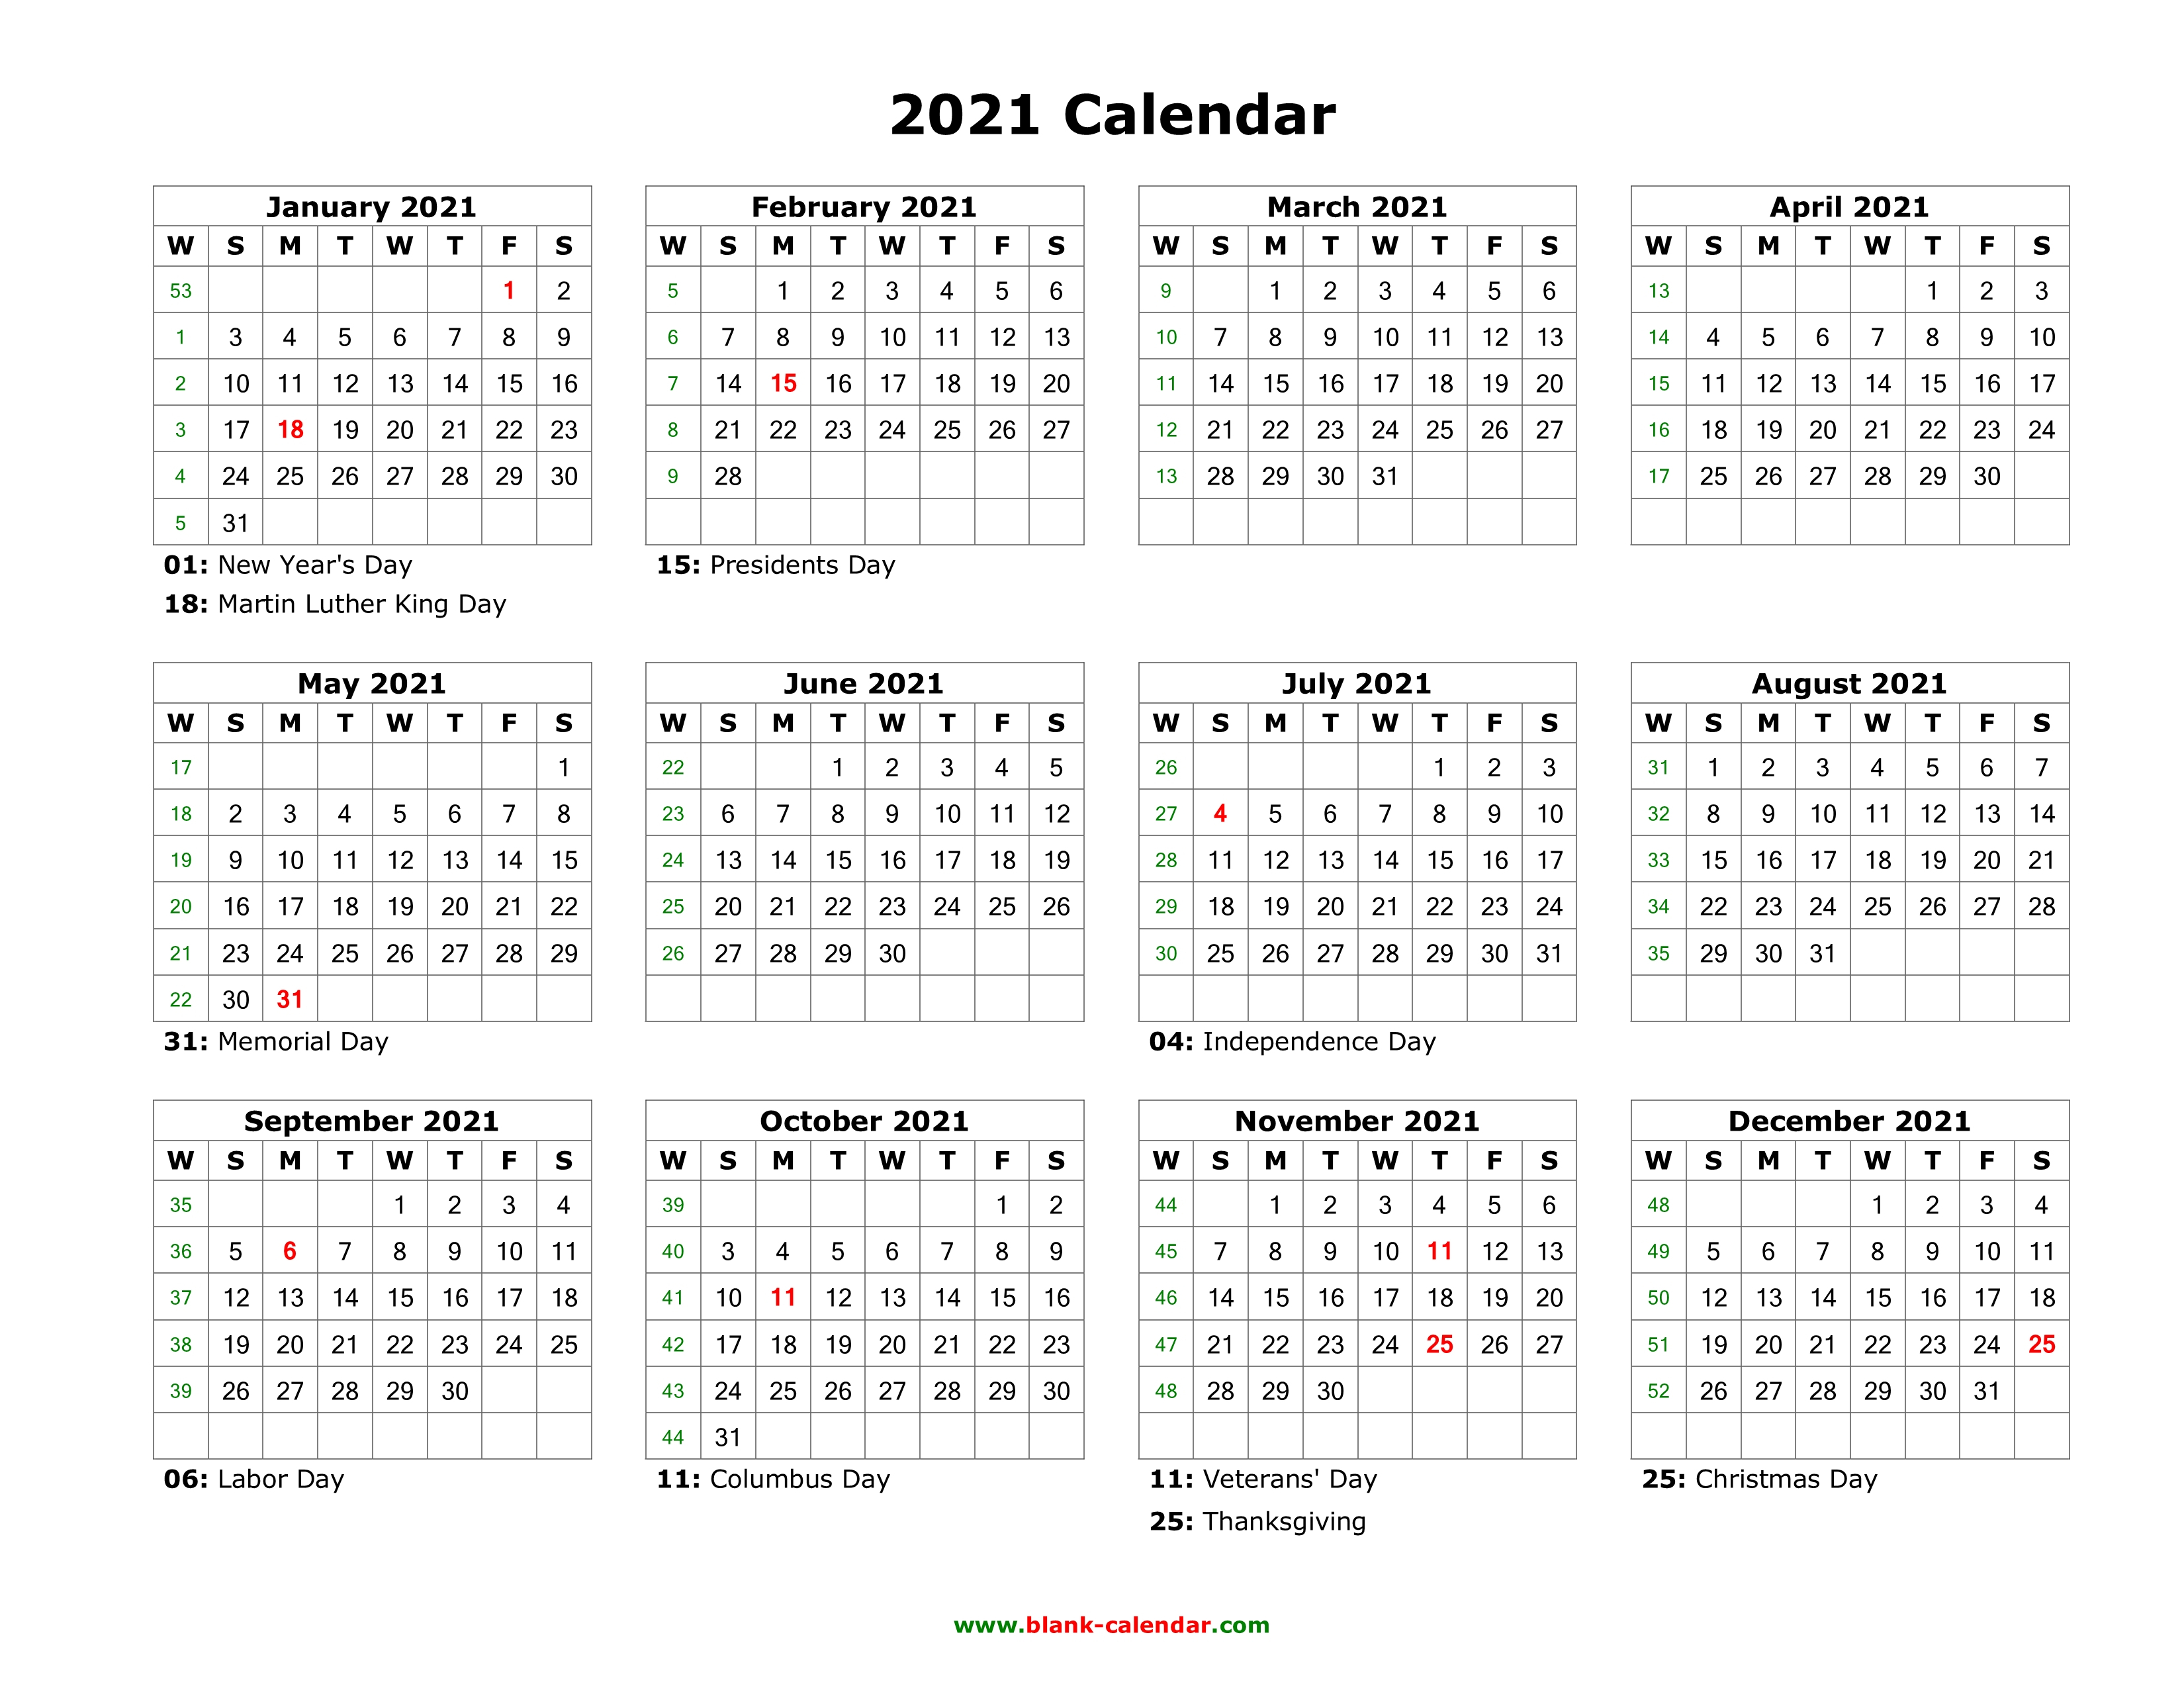 Blank Calendar 2021 | Free Download Calendar Templates throughout 2021 Printable Calendar Free